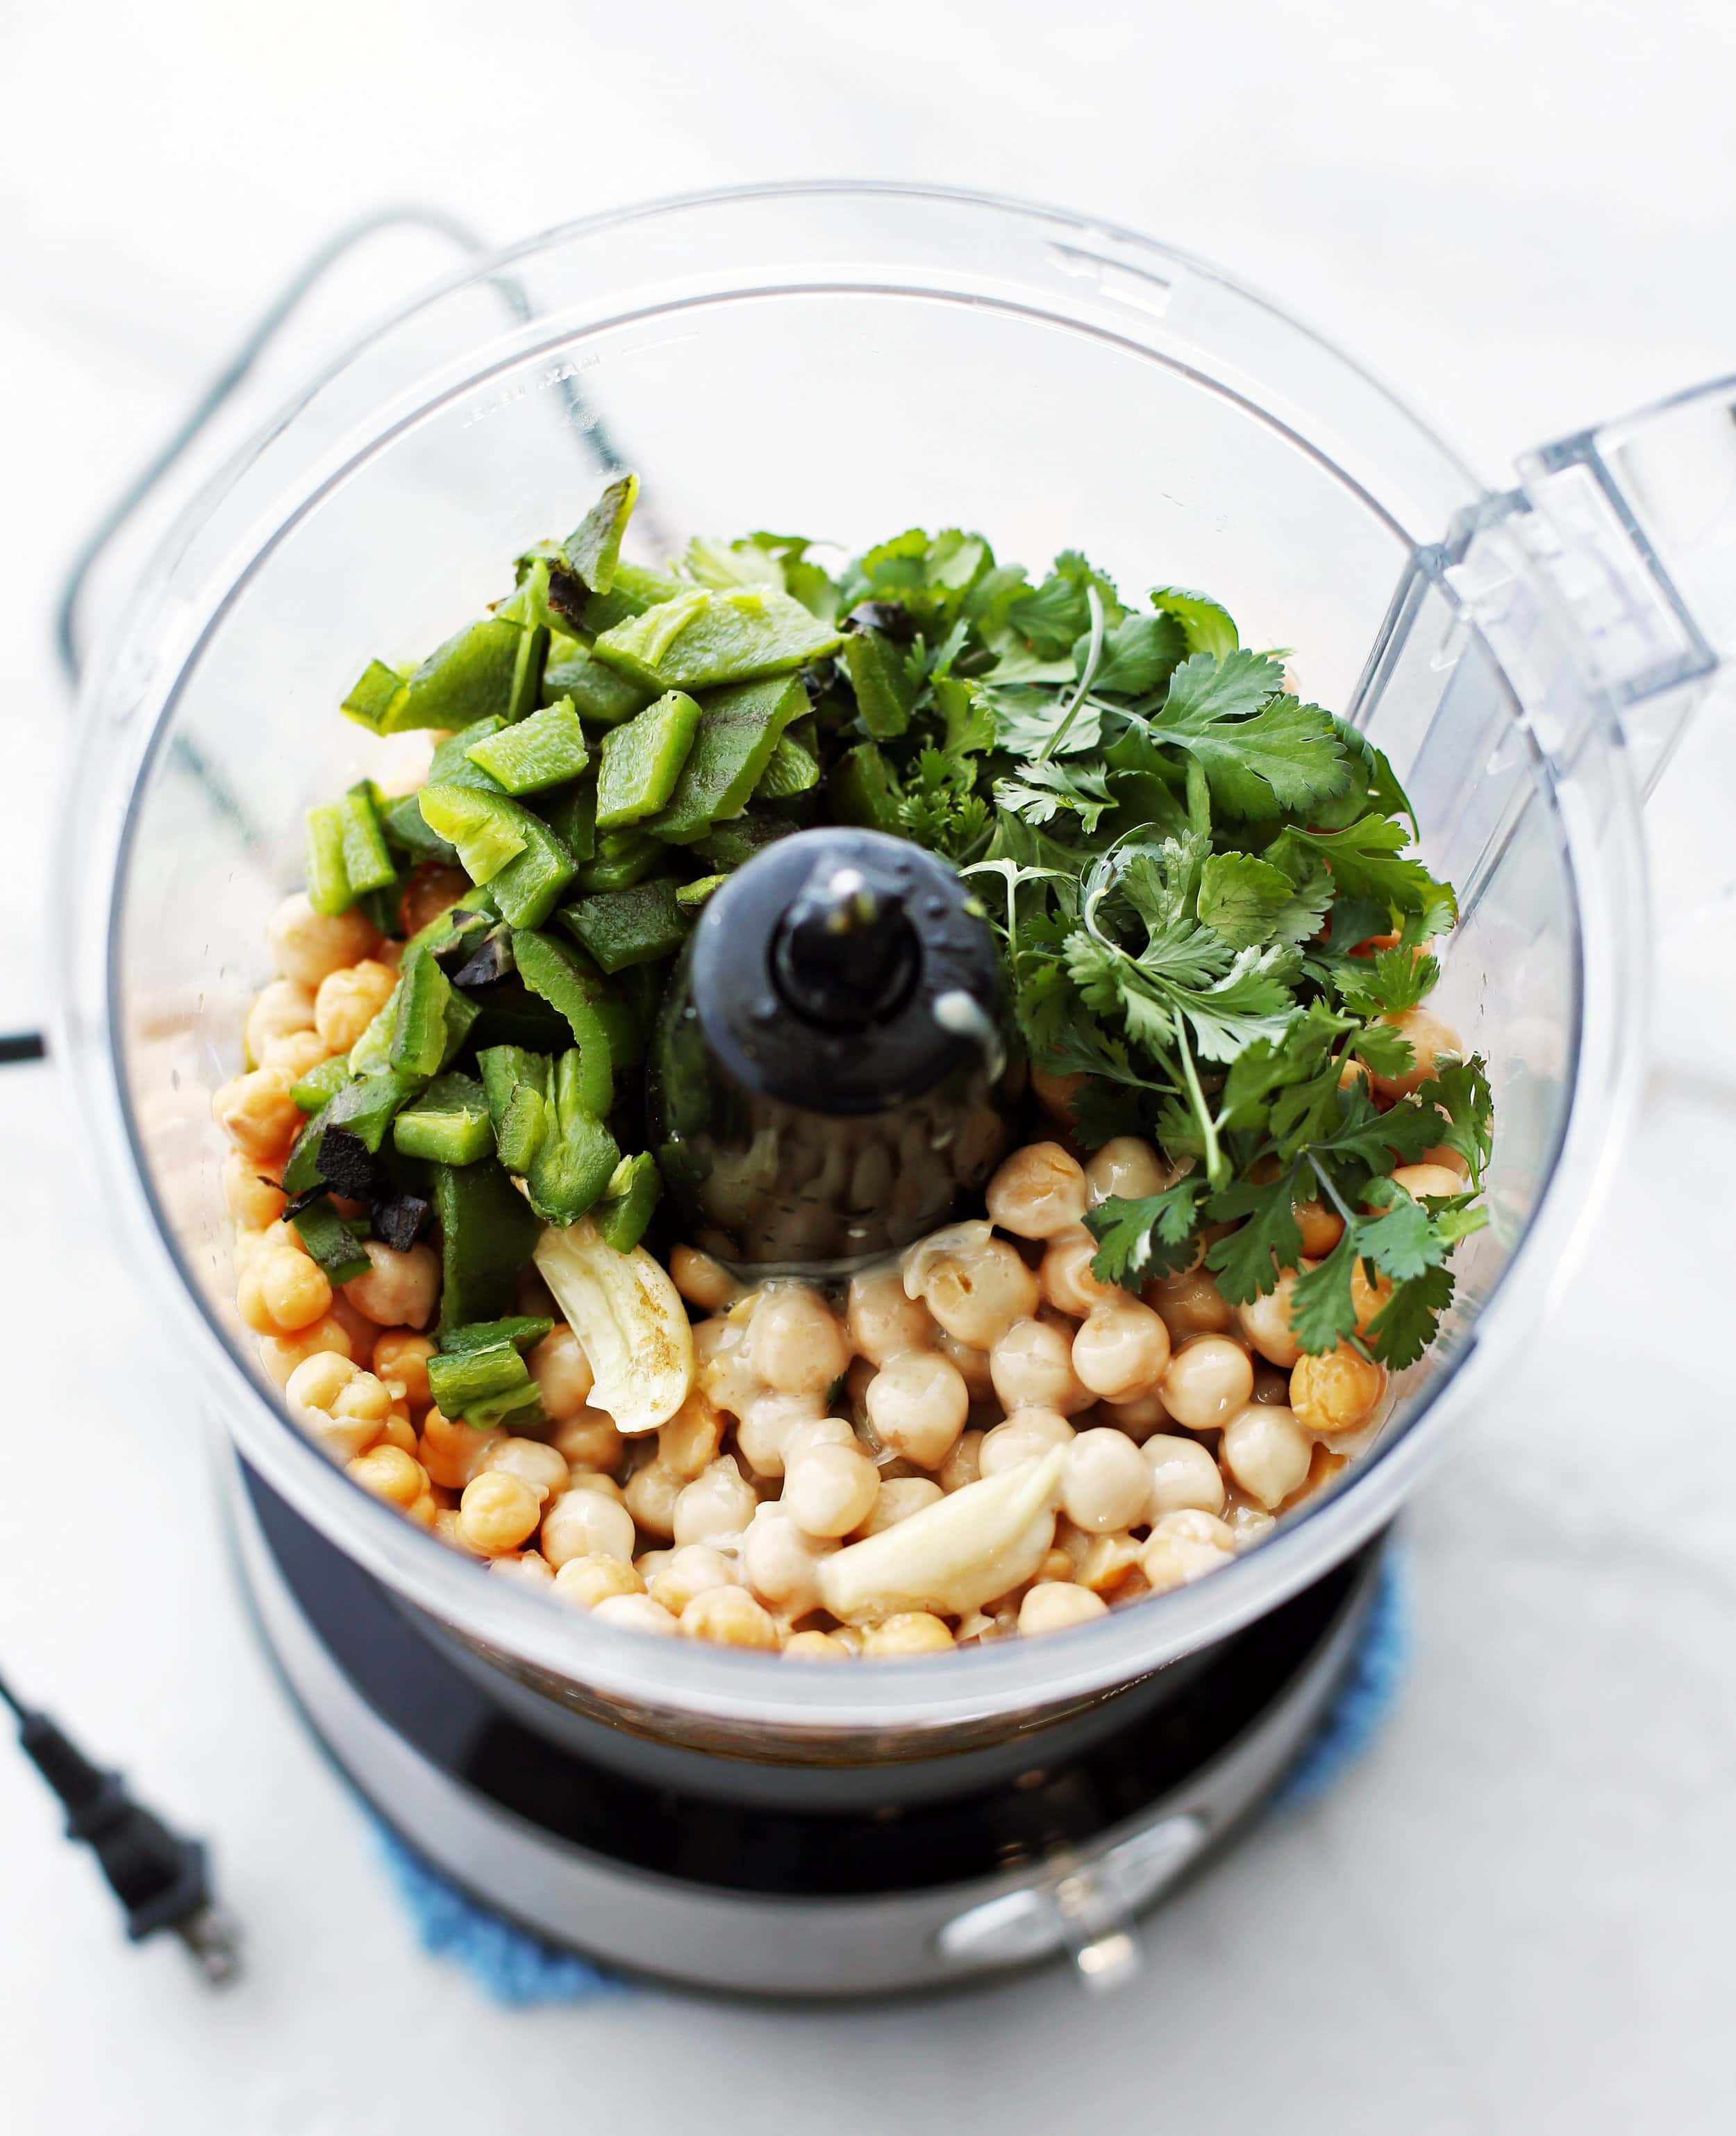 Roasted jalapeno, cilantro, chickpeas, garlic, lemon, olive oil, and spices in a food processor.